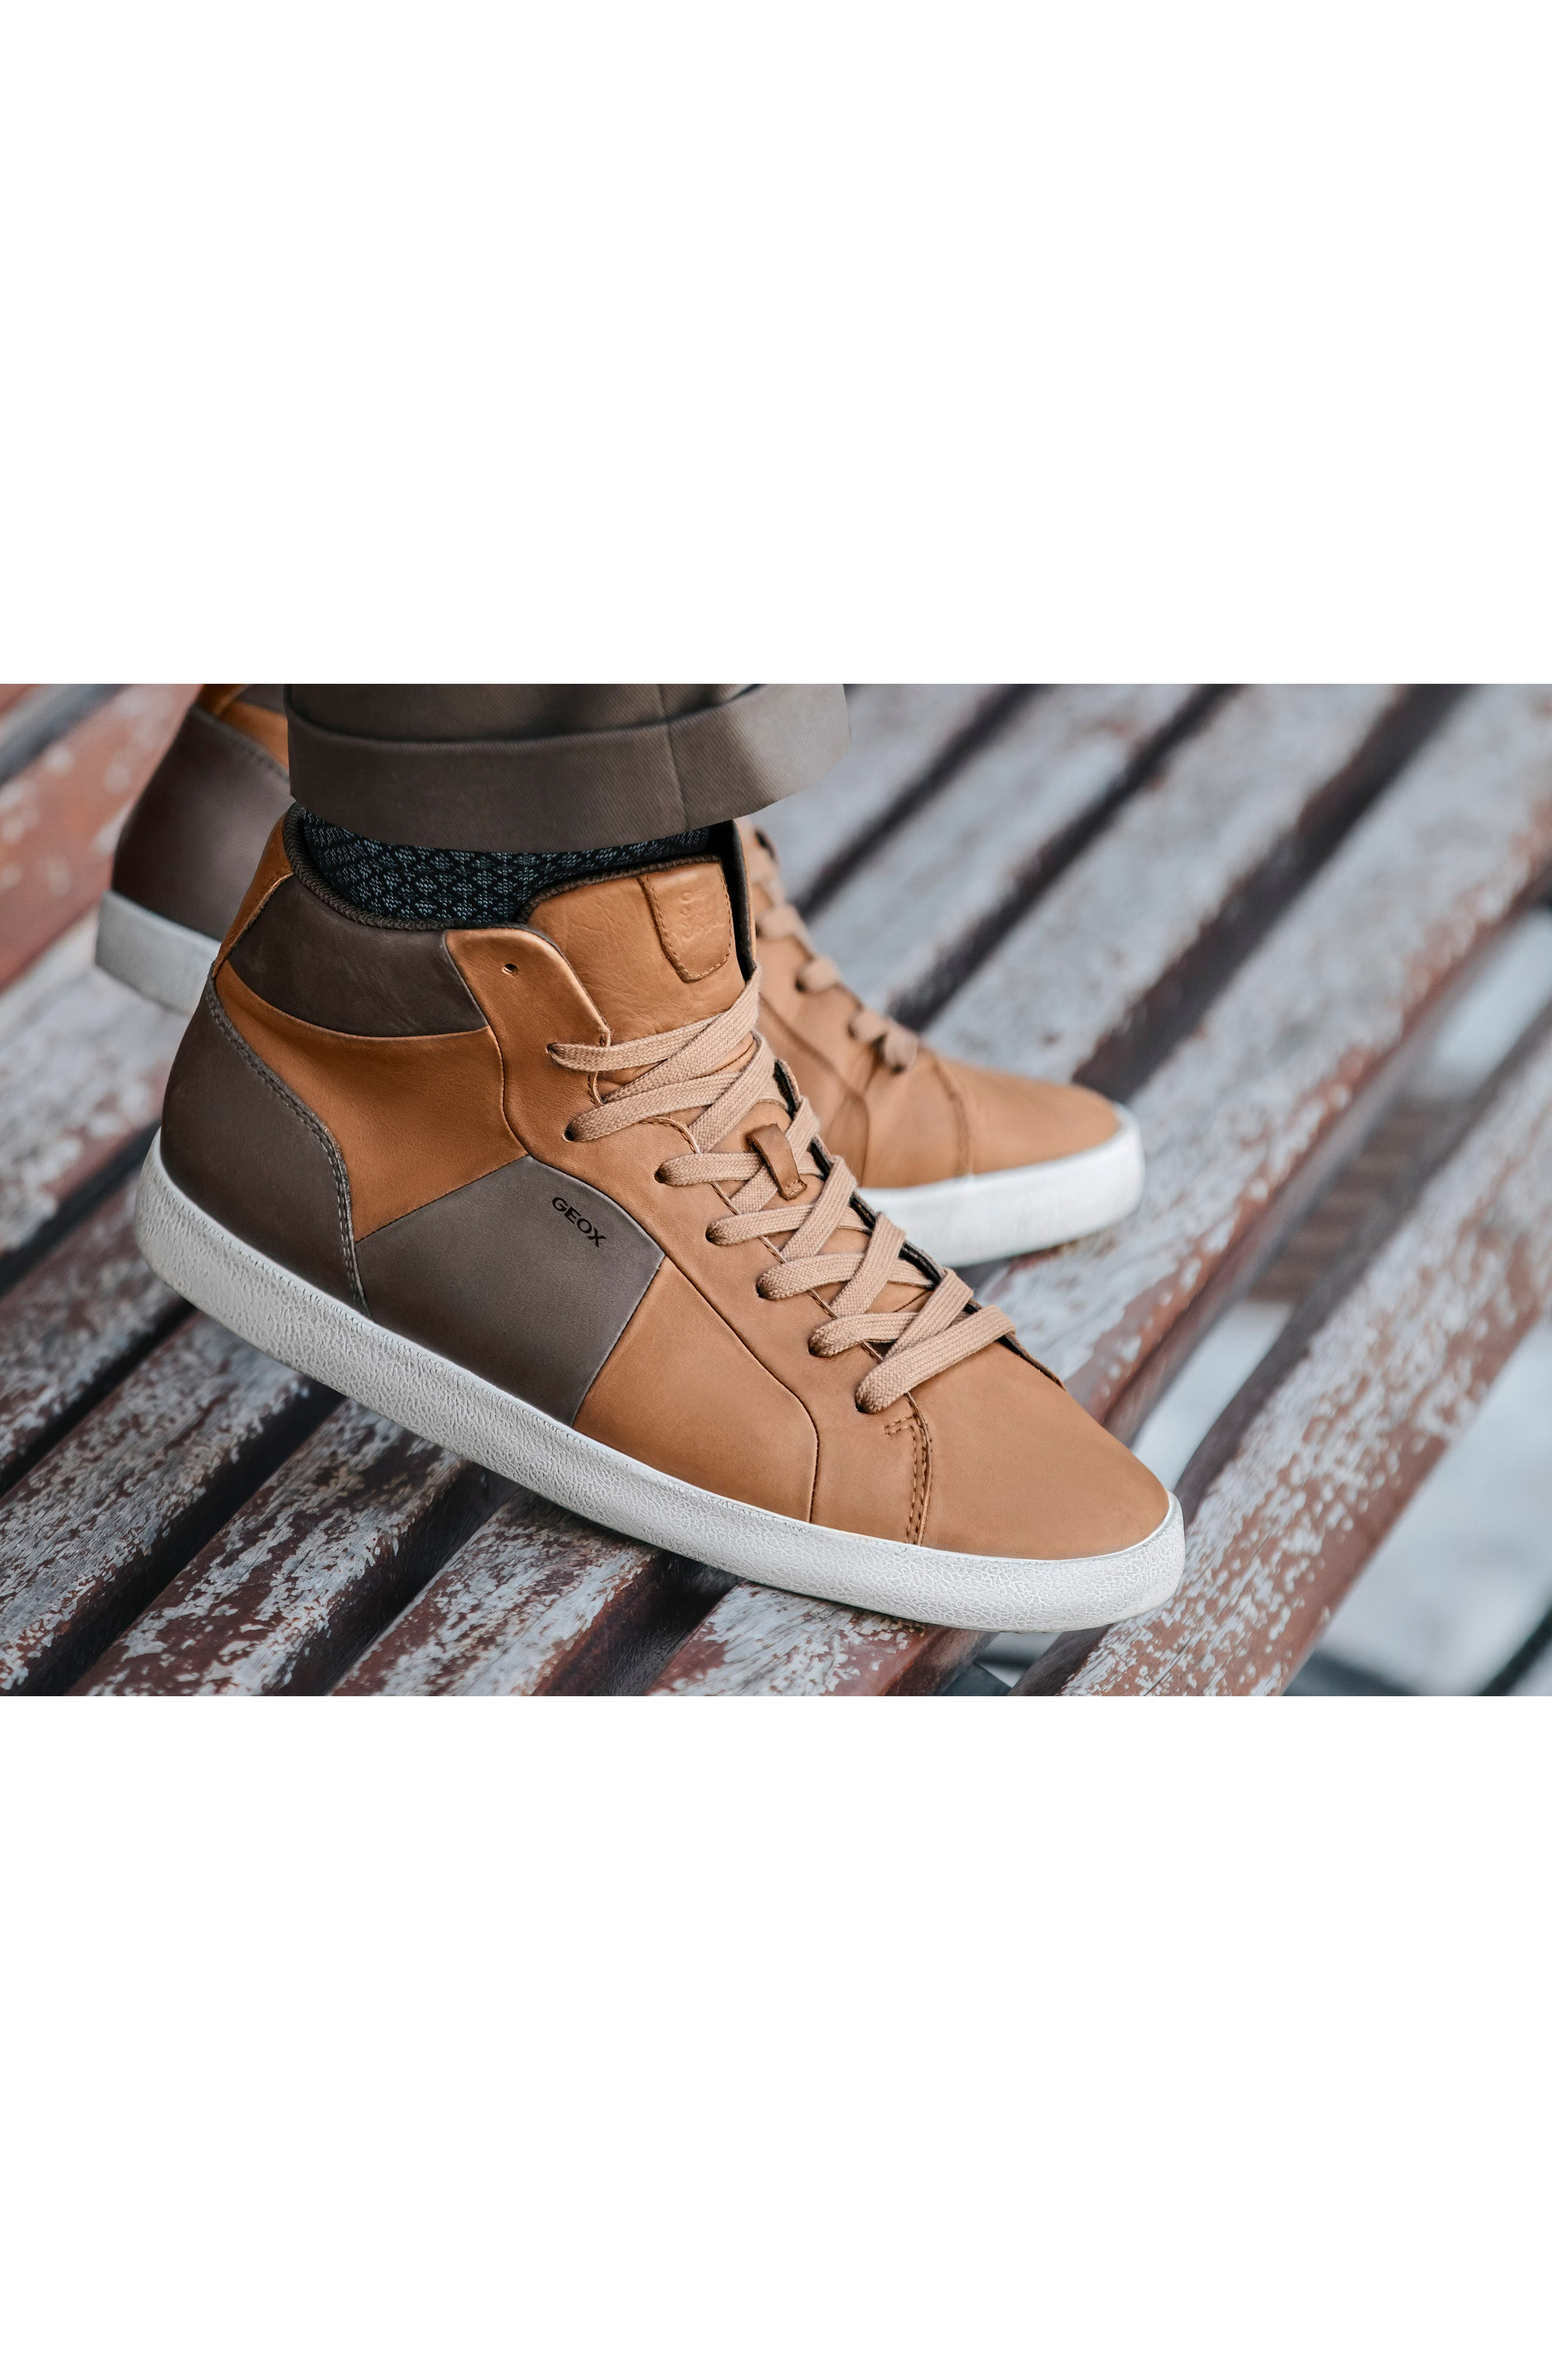 Smart 84 High Top Sneaker,                             Alternate thumbnail 8, color,                             BLACK/ COFFEE LEATHER